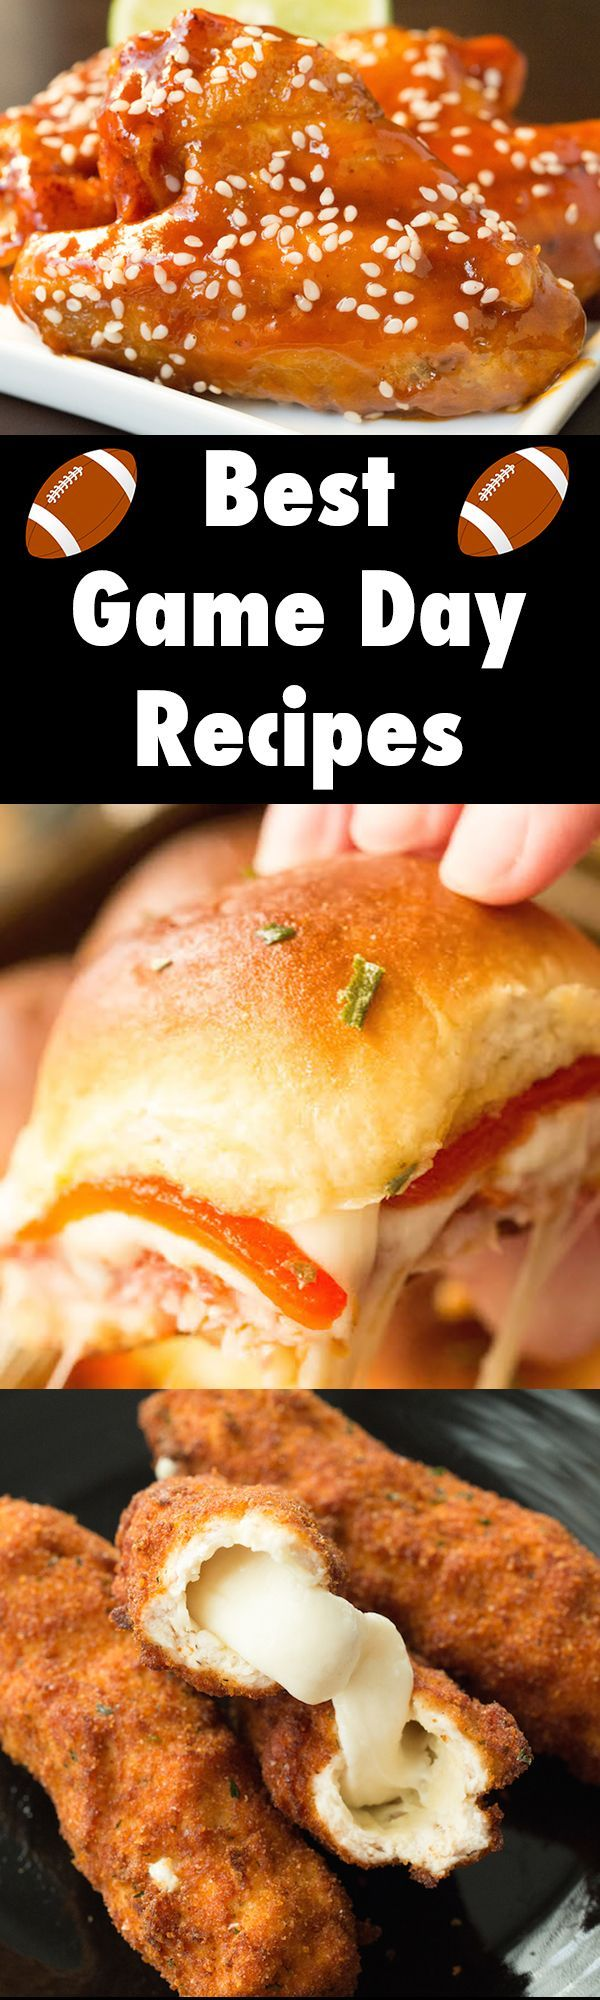 Our Best Game Day Recipes - Super Bowl Recipe Ideas: